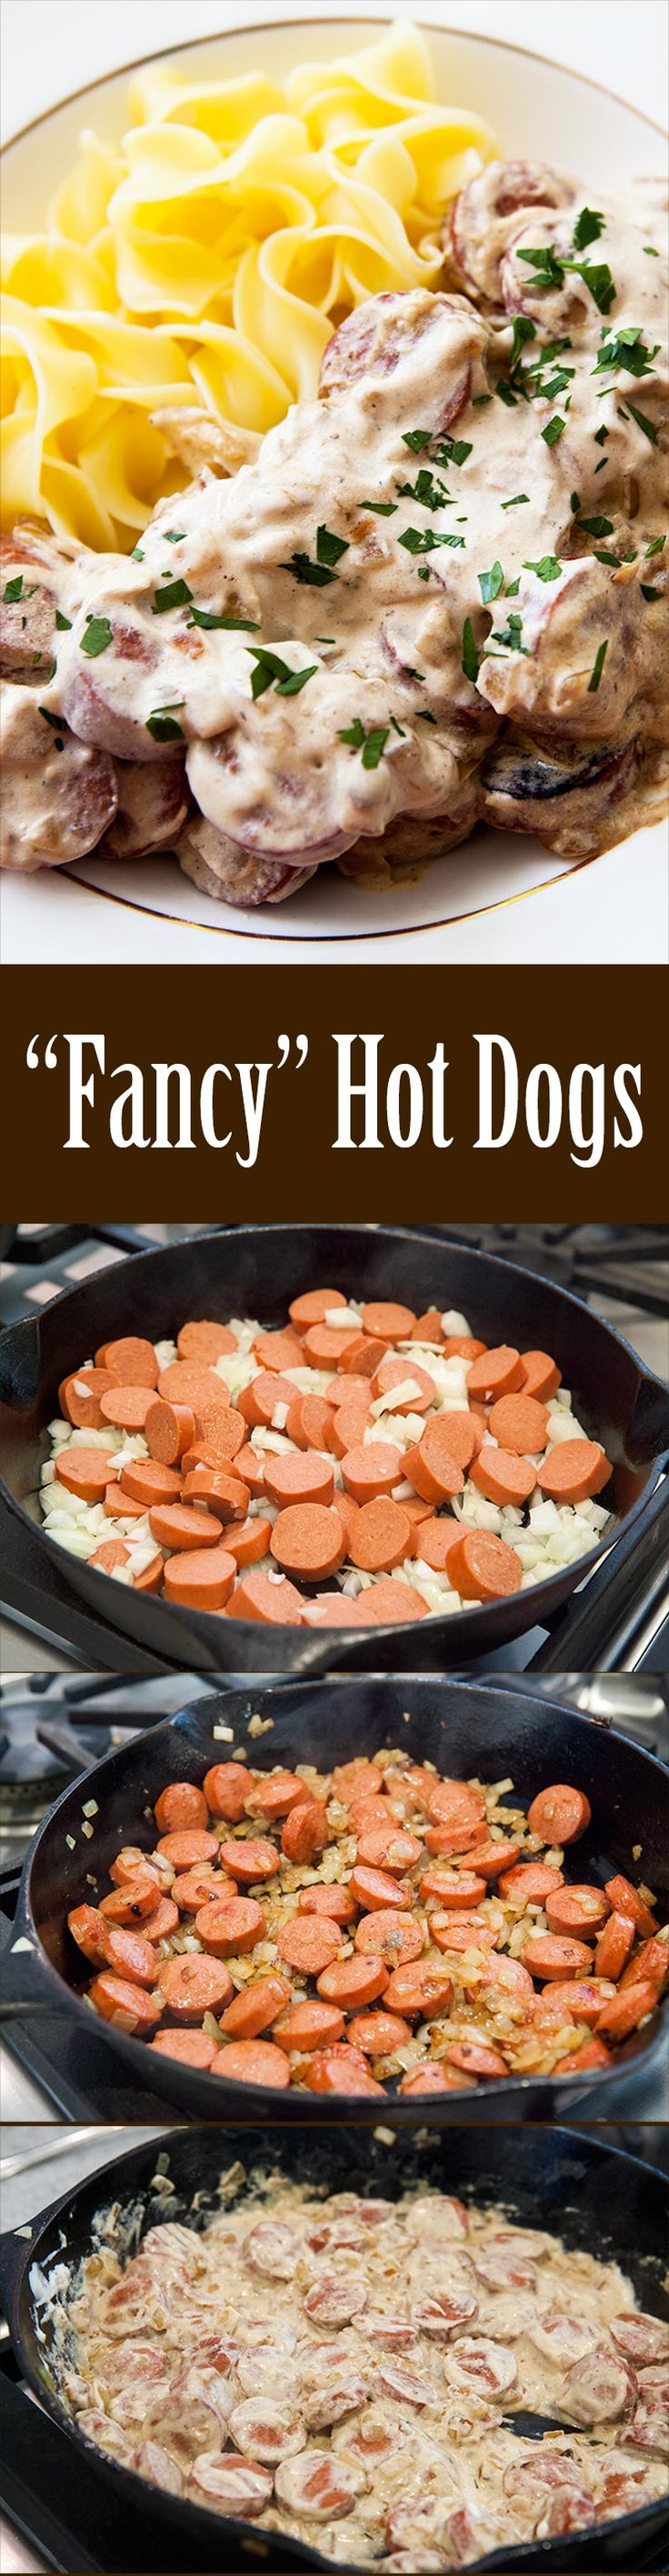 """Fancy"" hot dogs! A family favorite, hot dog slices sautéed with onions in a sour cream sauce, served with noodles. Easy to make, easy on the budget, and kids love it! Takes only 20 minutes, start to finish. On SimplyRecipes.com"